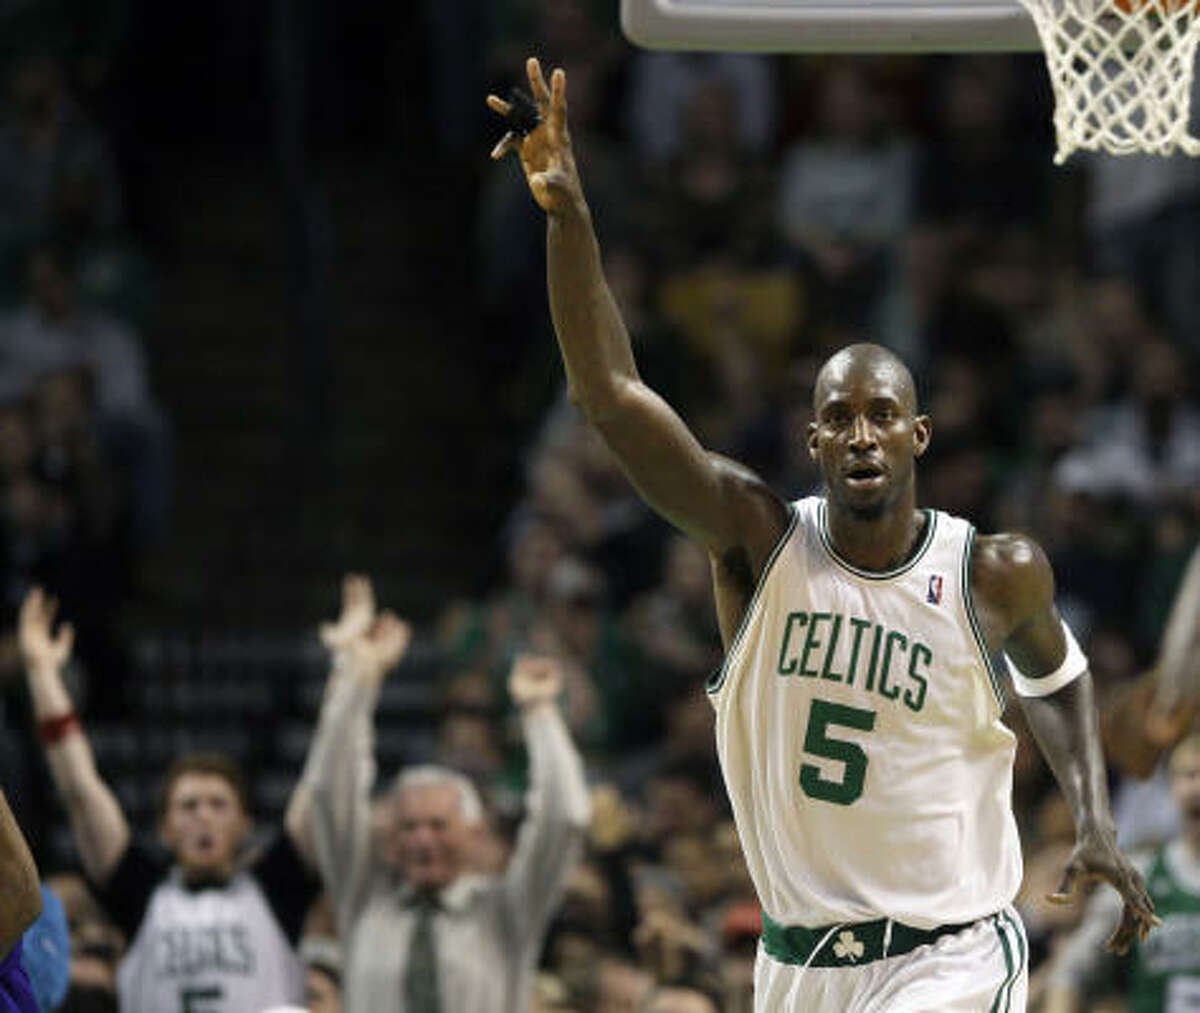 1 - BOSTON CELTICS - (Last wk: 1) - 42-11 - Don't think KG and his buddies won't be looking for a little revenge when the Lakers come calling Thursday night. LA snapped the 19-game win streak on Christmas, but now could become victim No. 13 in the new streak.